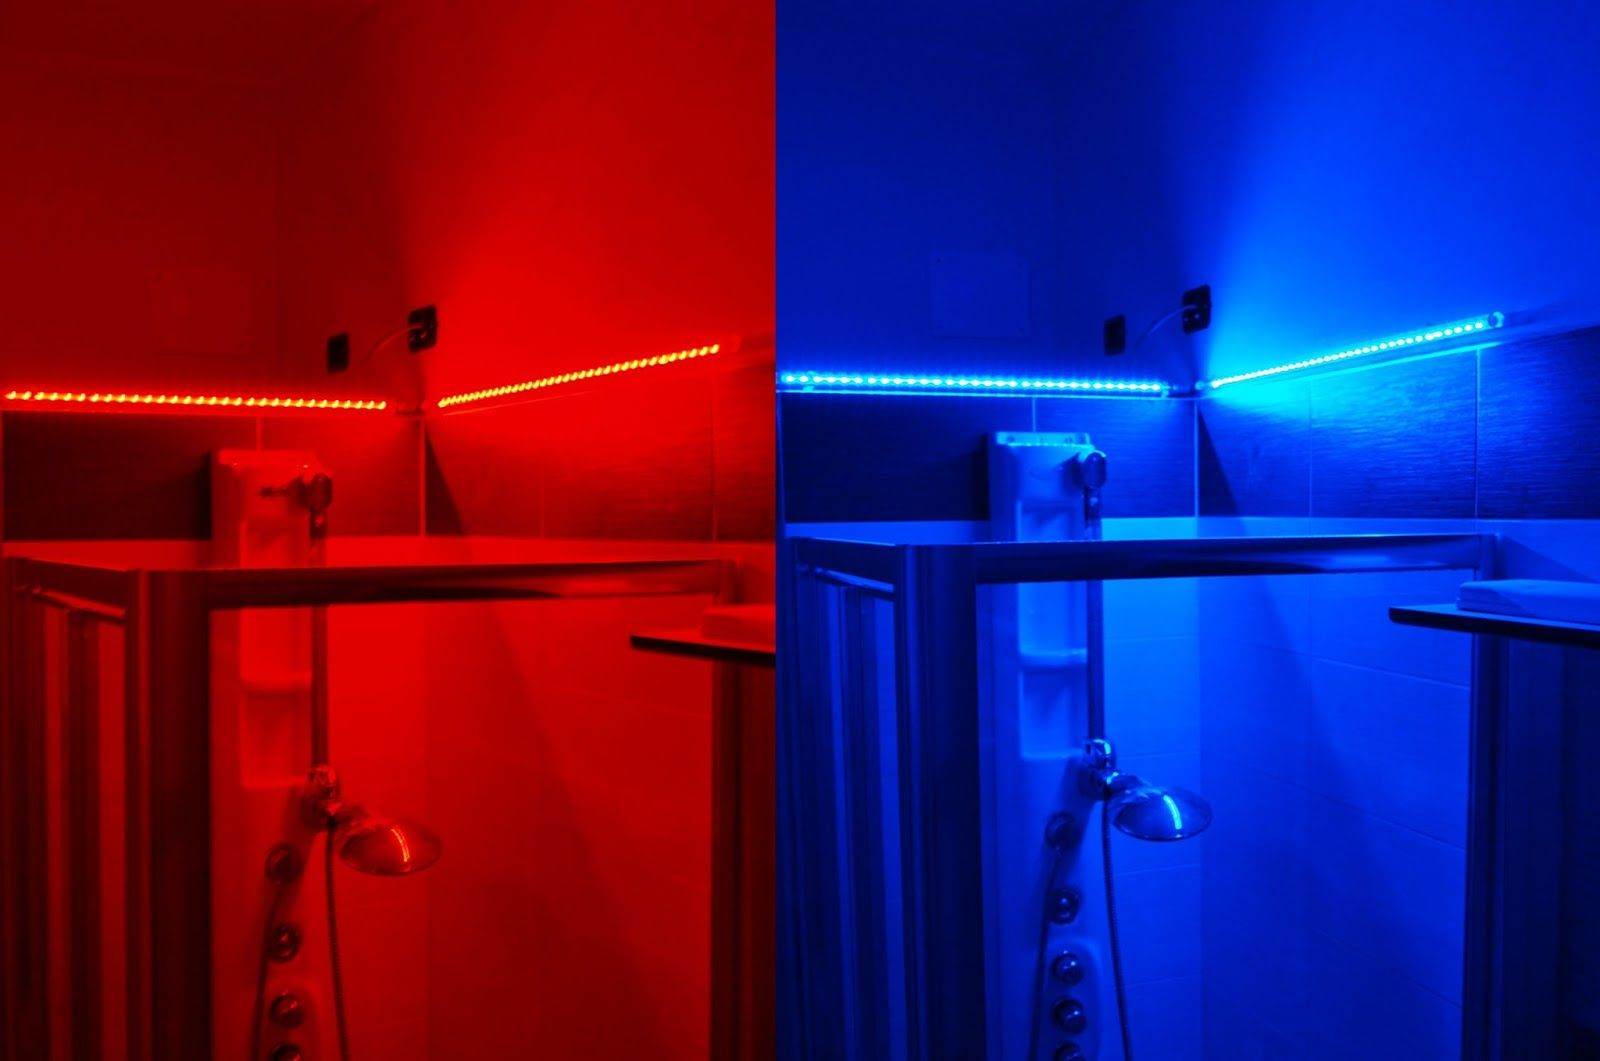 Doccia Con Led Una Doccia Illuminata Con Barre Led Rgb Barre Led Barre Neon